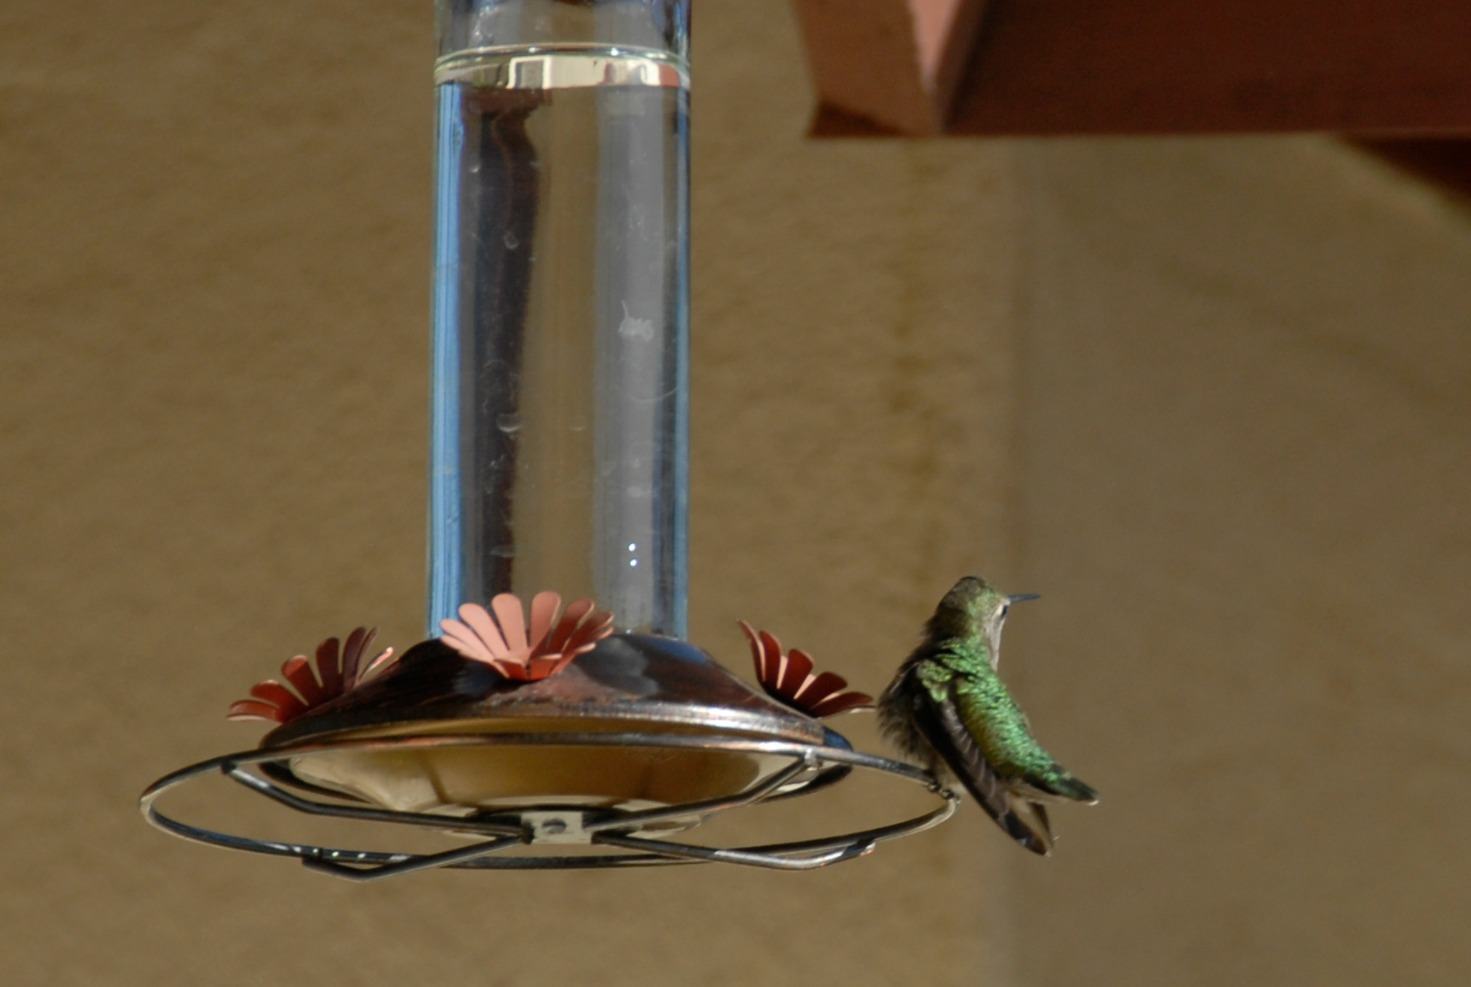 Anna Hummingbird rests by the bird feeder